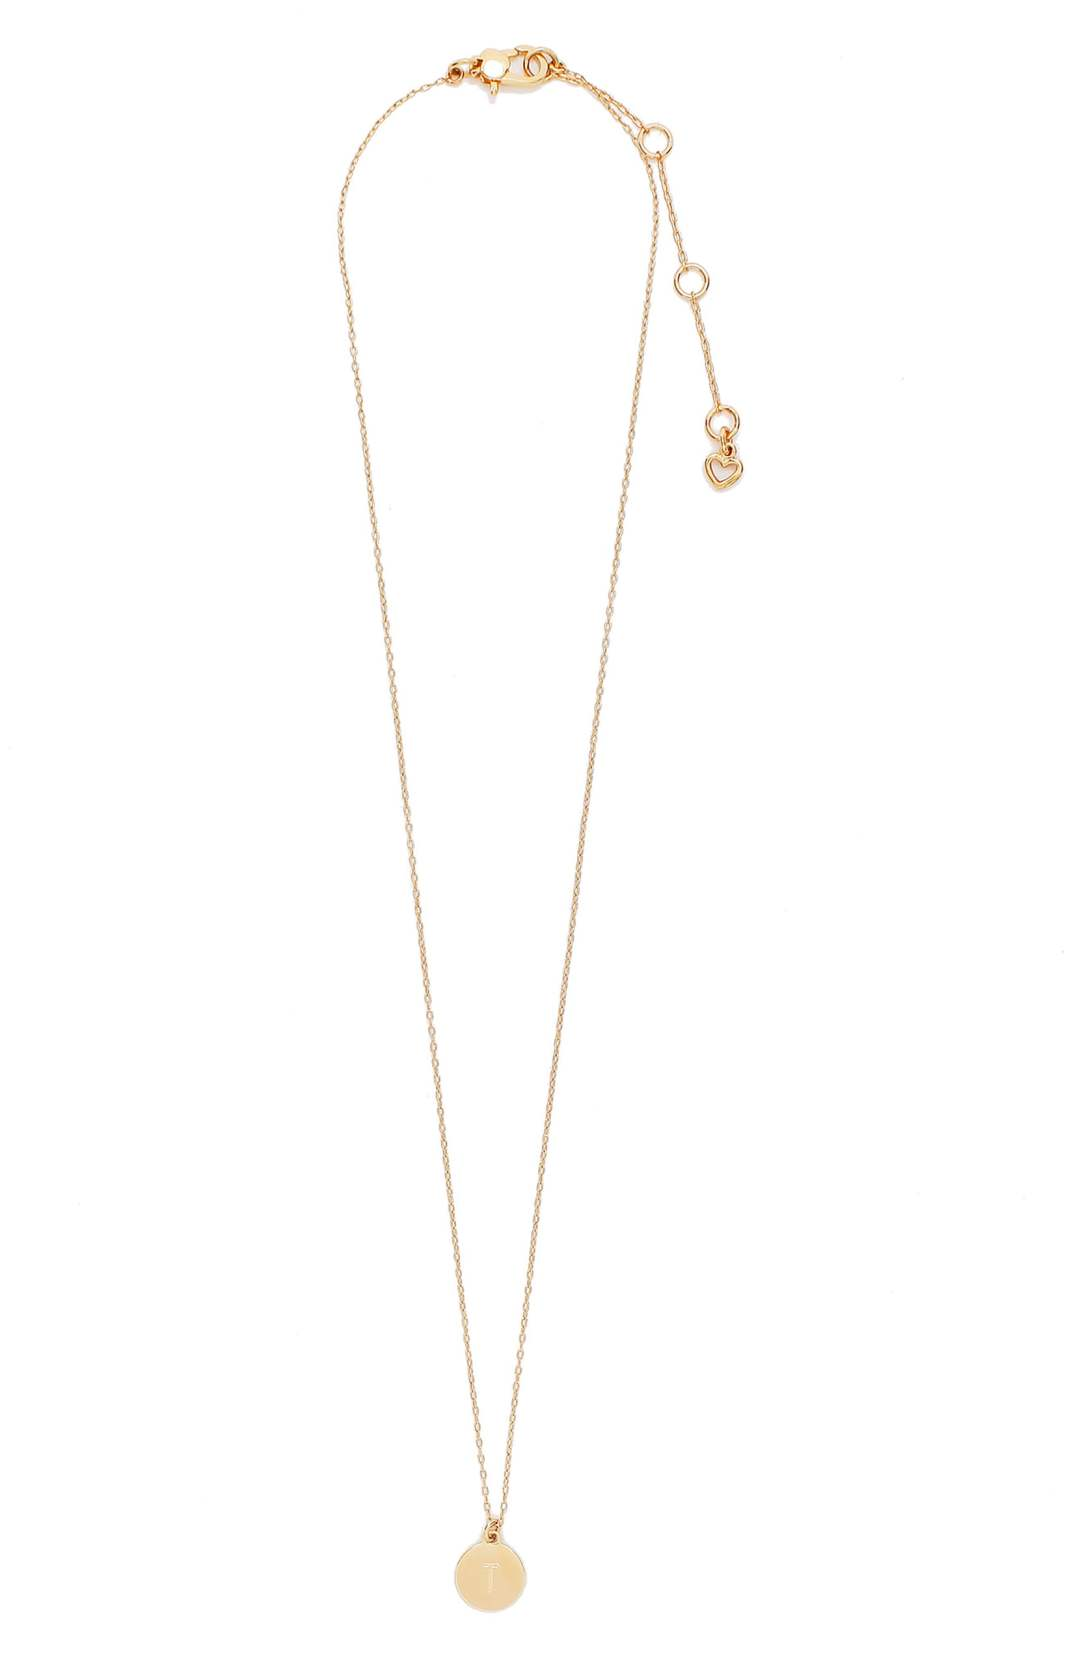 Kate Spade New York Mini Initial Pendant Necklace